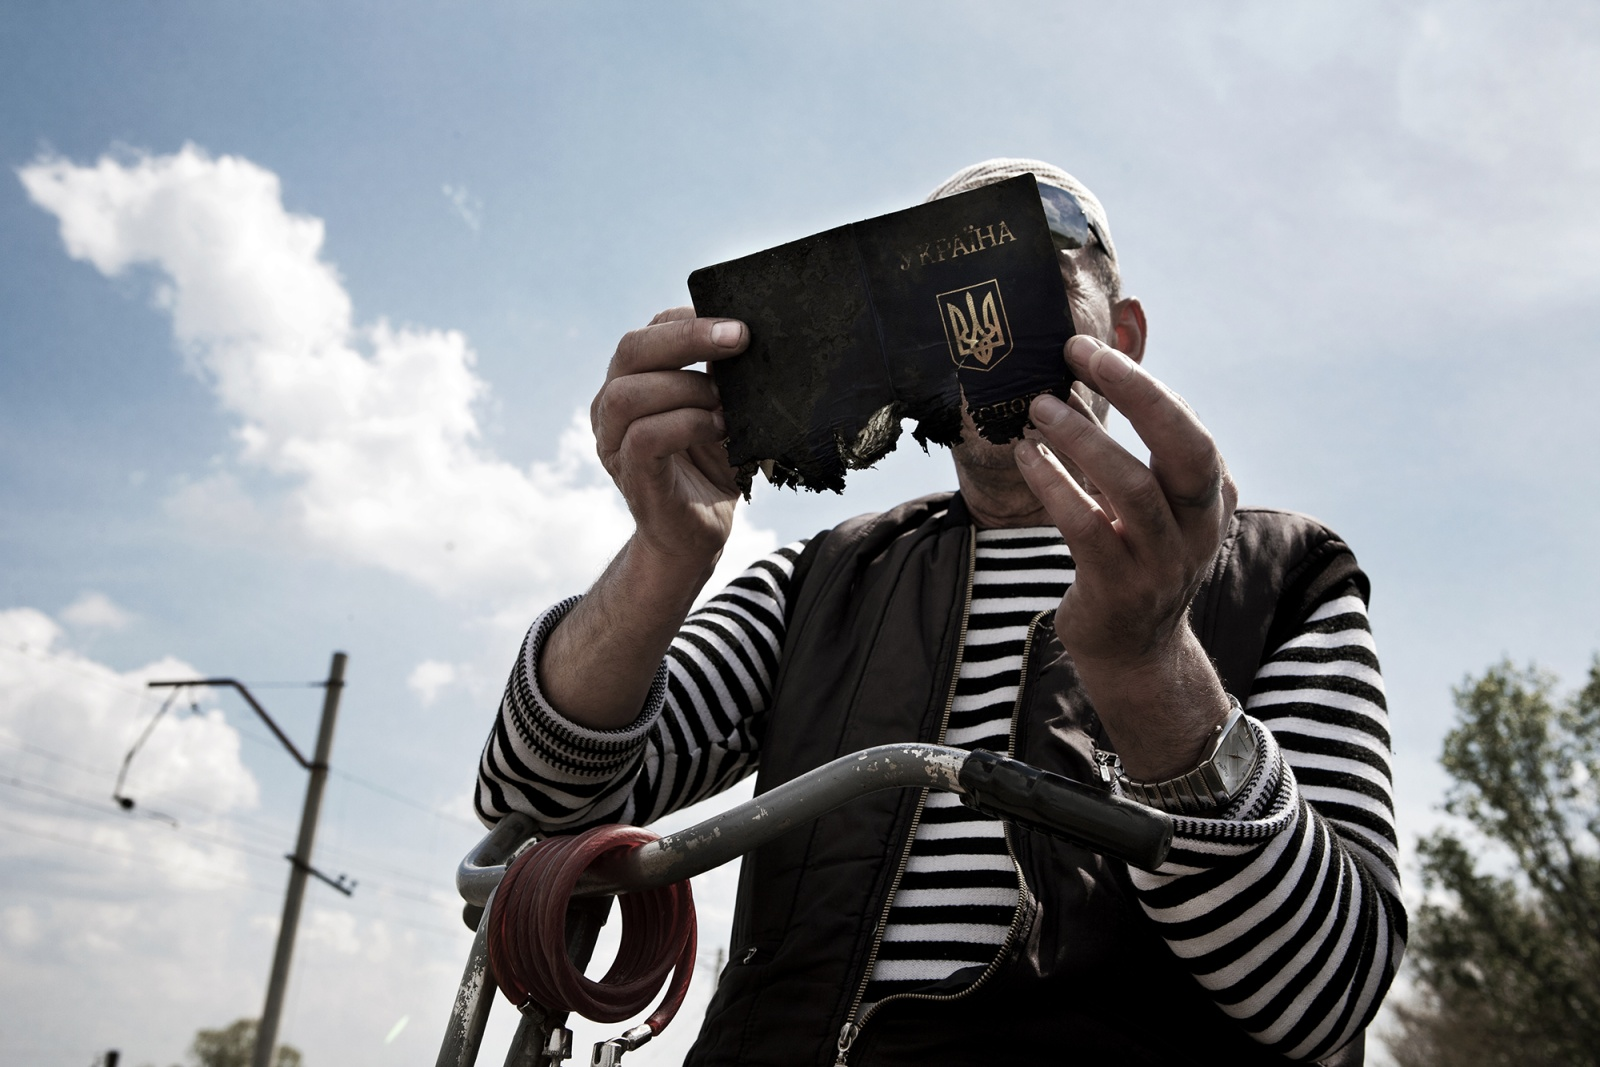 Slavyansk, Andriivka village, Ukraine. May 2014 - A villager looks a Ukrainian passport lost by the rightful owner and found among the remains of a pro-Russian checkpoint, few hours after the end of a clash between separatists and Ukrainian troops. The document, despite being par tially burned, is fully readable. It belonged to a young man coming from the west, from the ranks of the regular army deployed Ukrainian, probably in the National Guard.